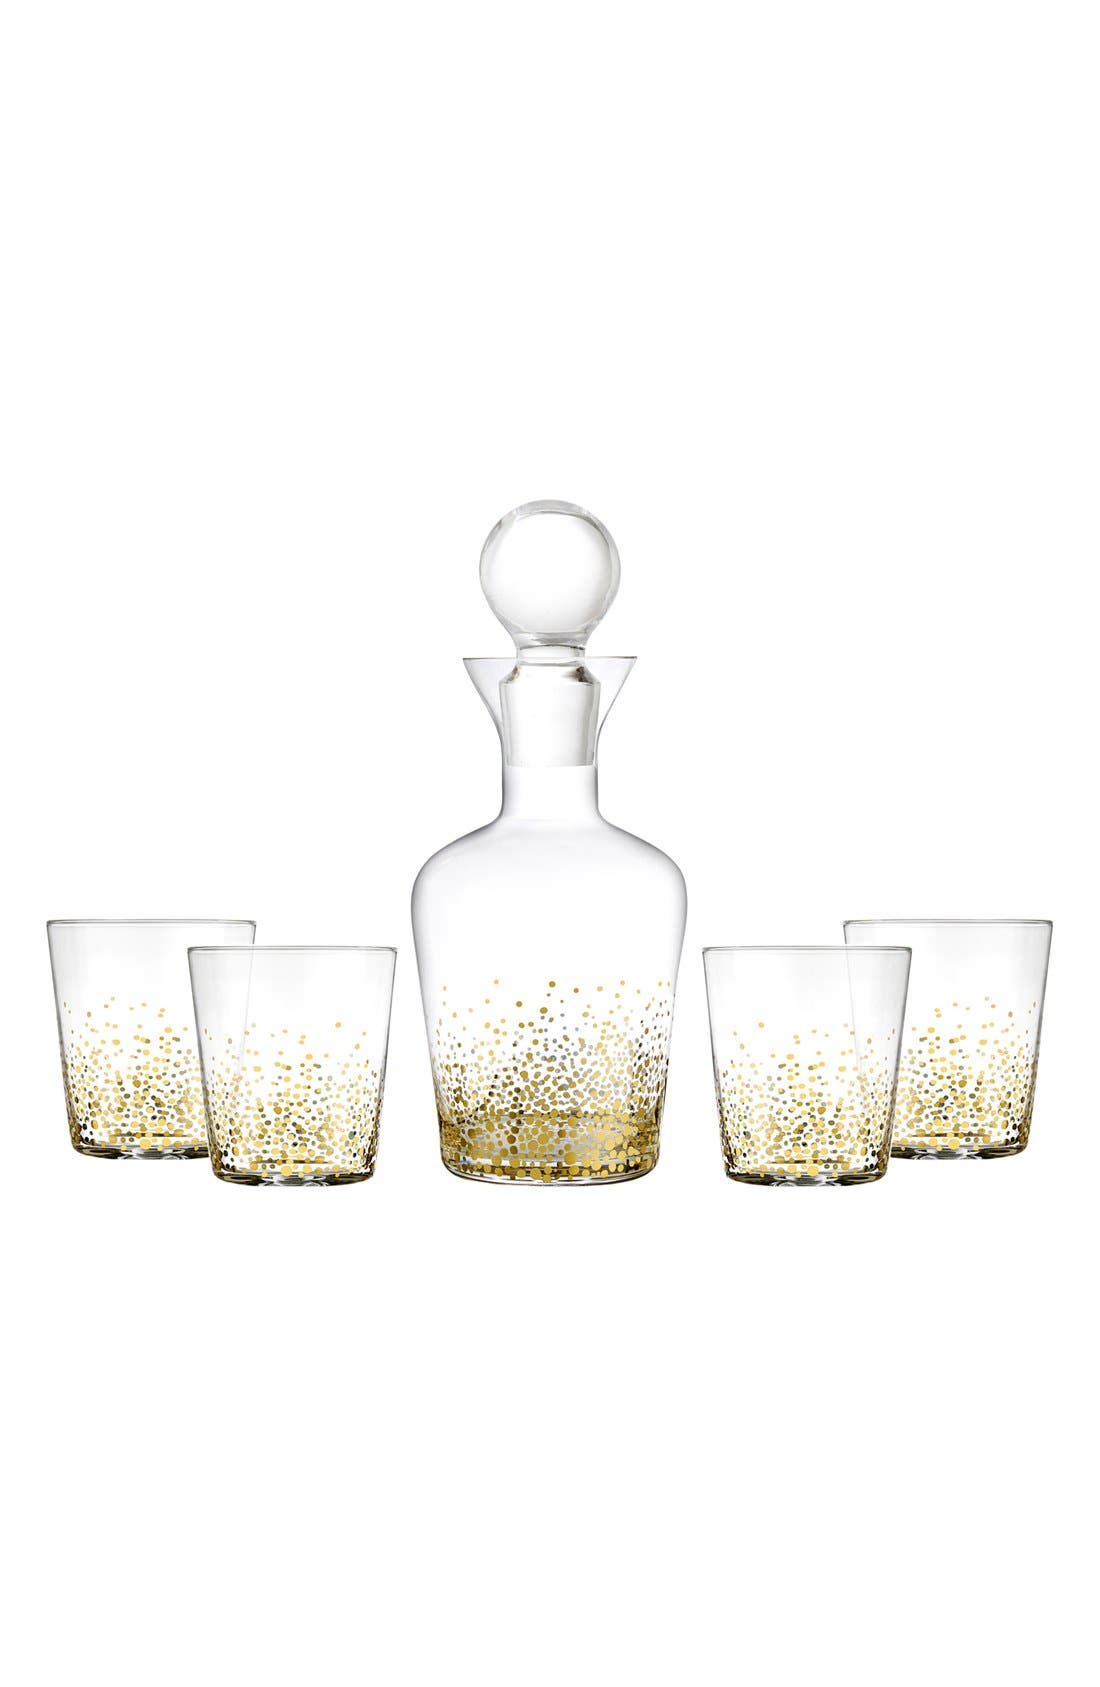 AMERICAN ATELIER 'Lustre' 5-Piece Decanter Set